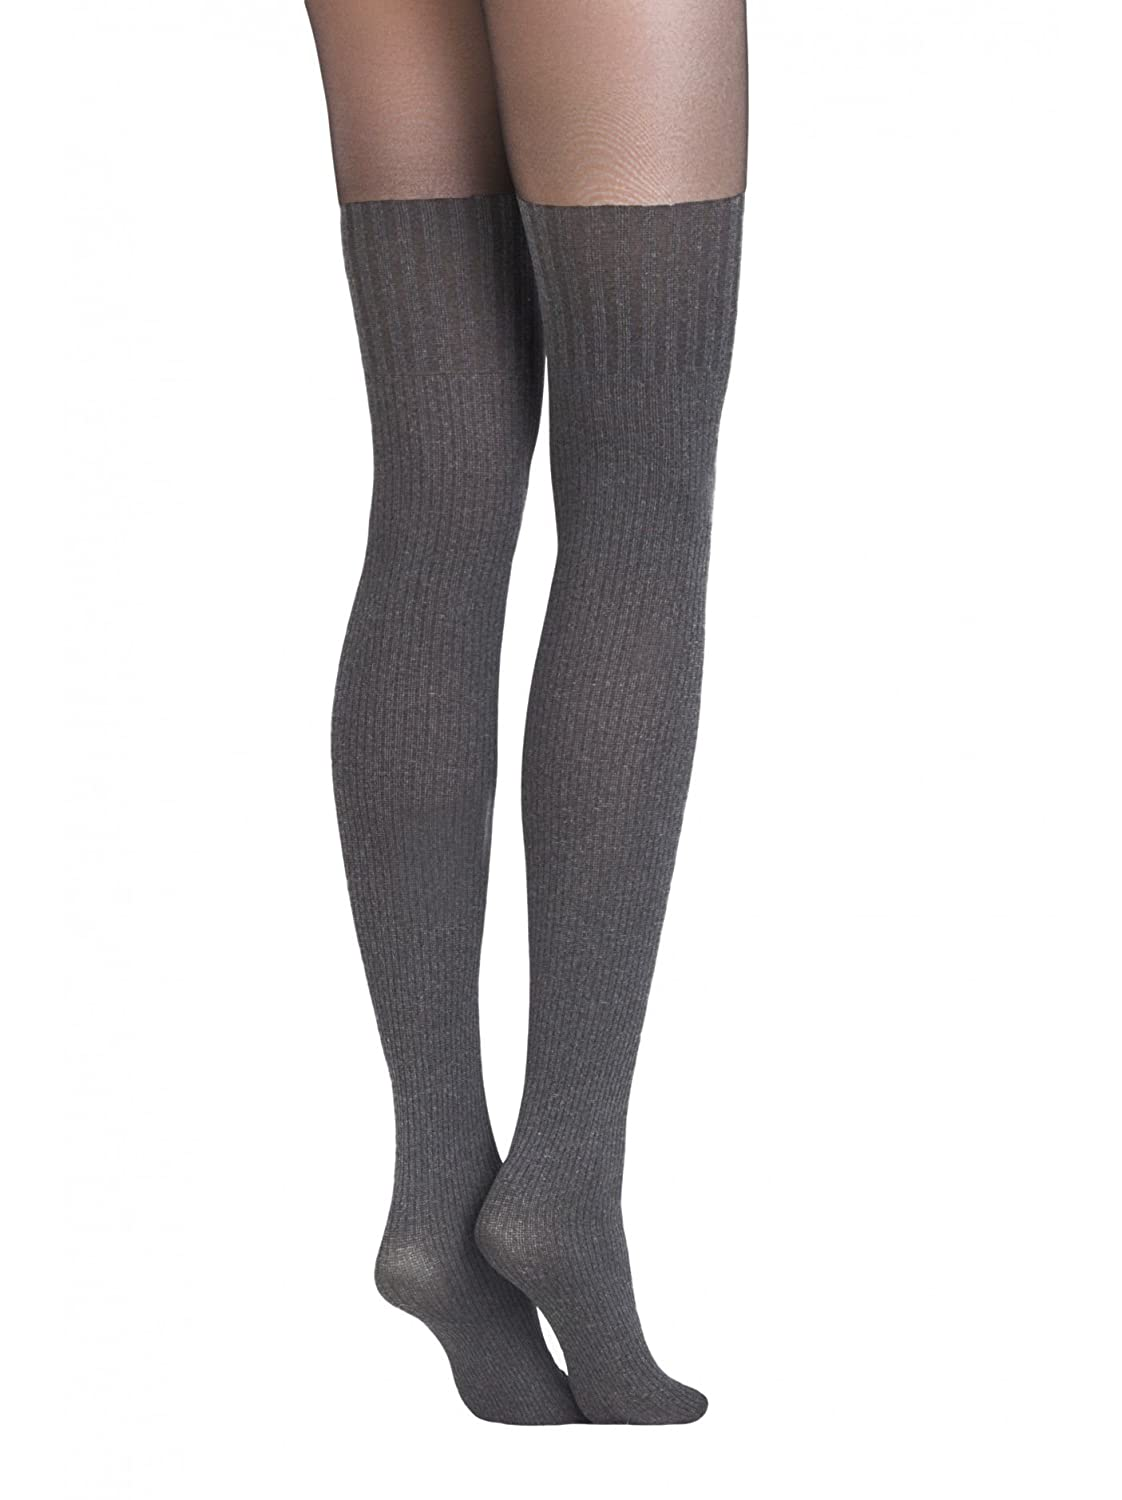 003ce9373f2cc Conte Women's Light Grey - Dark Grey Tights with Sheer Top and Thigh High  Opaque Knit Stockings at Amazon Women's Clothing store: